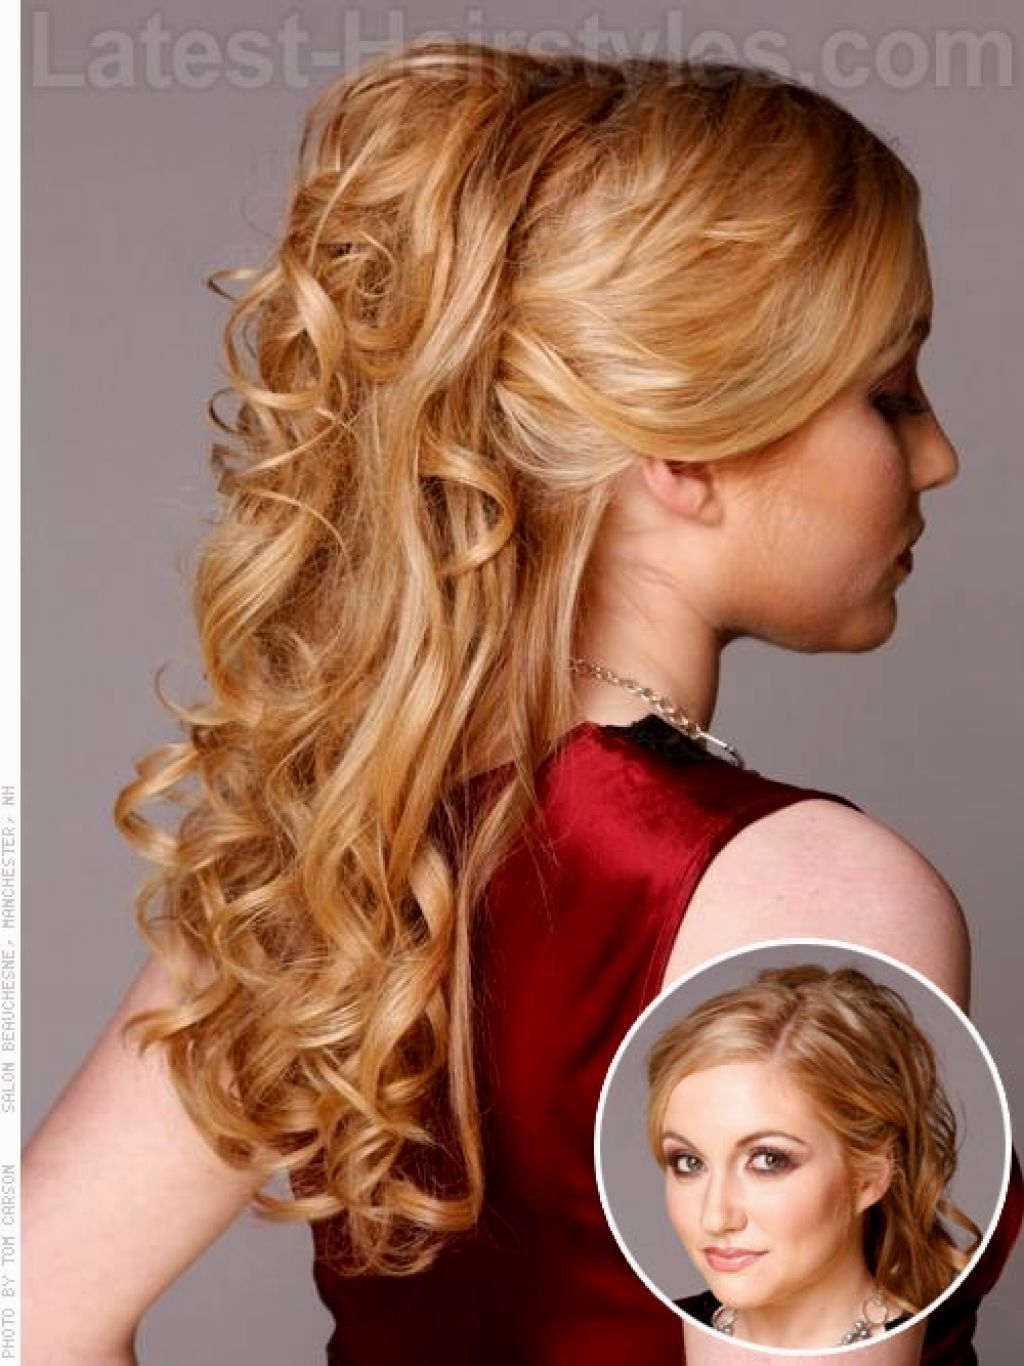 Prom Hairstyles For Medium Length Hair Homecoming Hairstyles Down Regarding Homecoming Updos Medium Hairstyles (View 12 of 15)